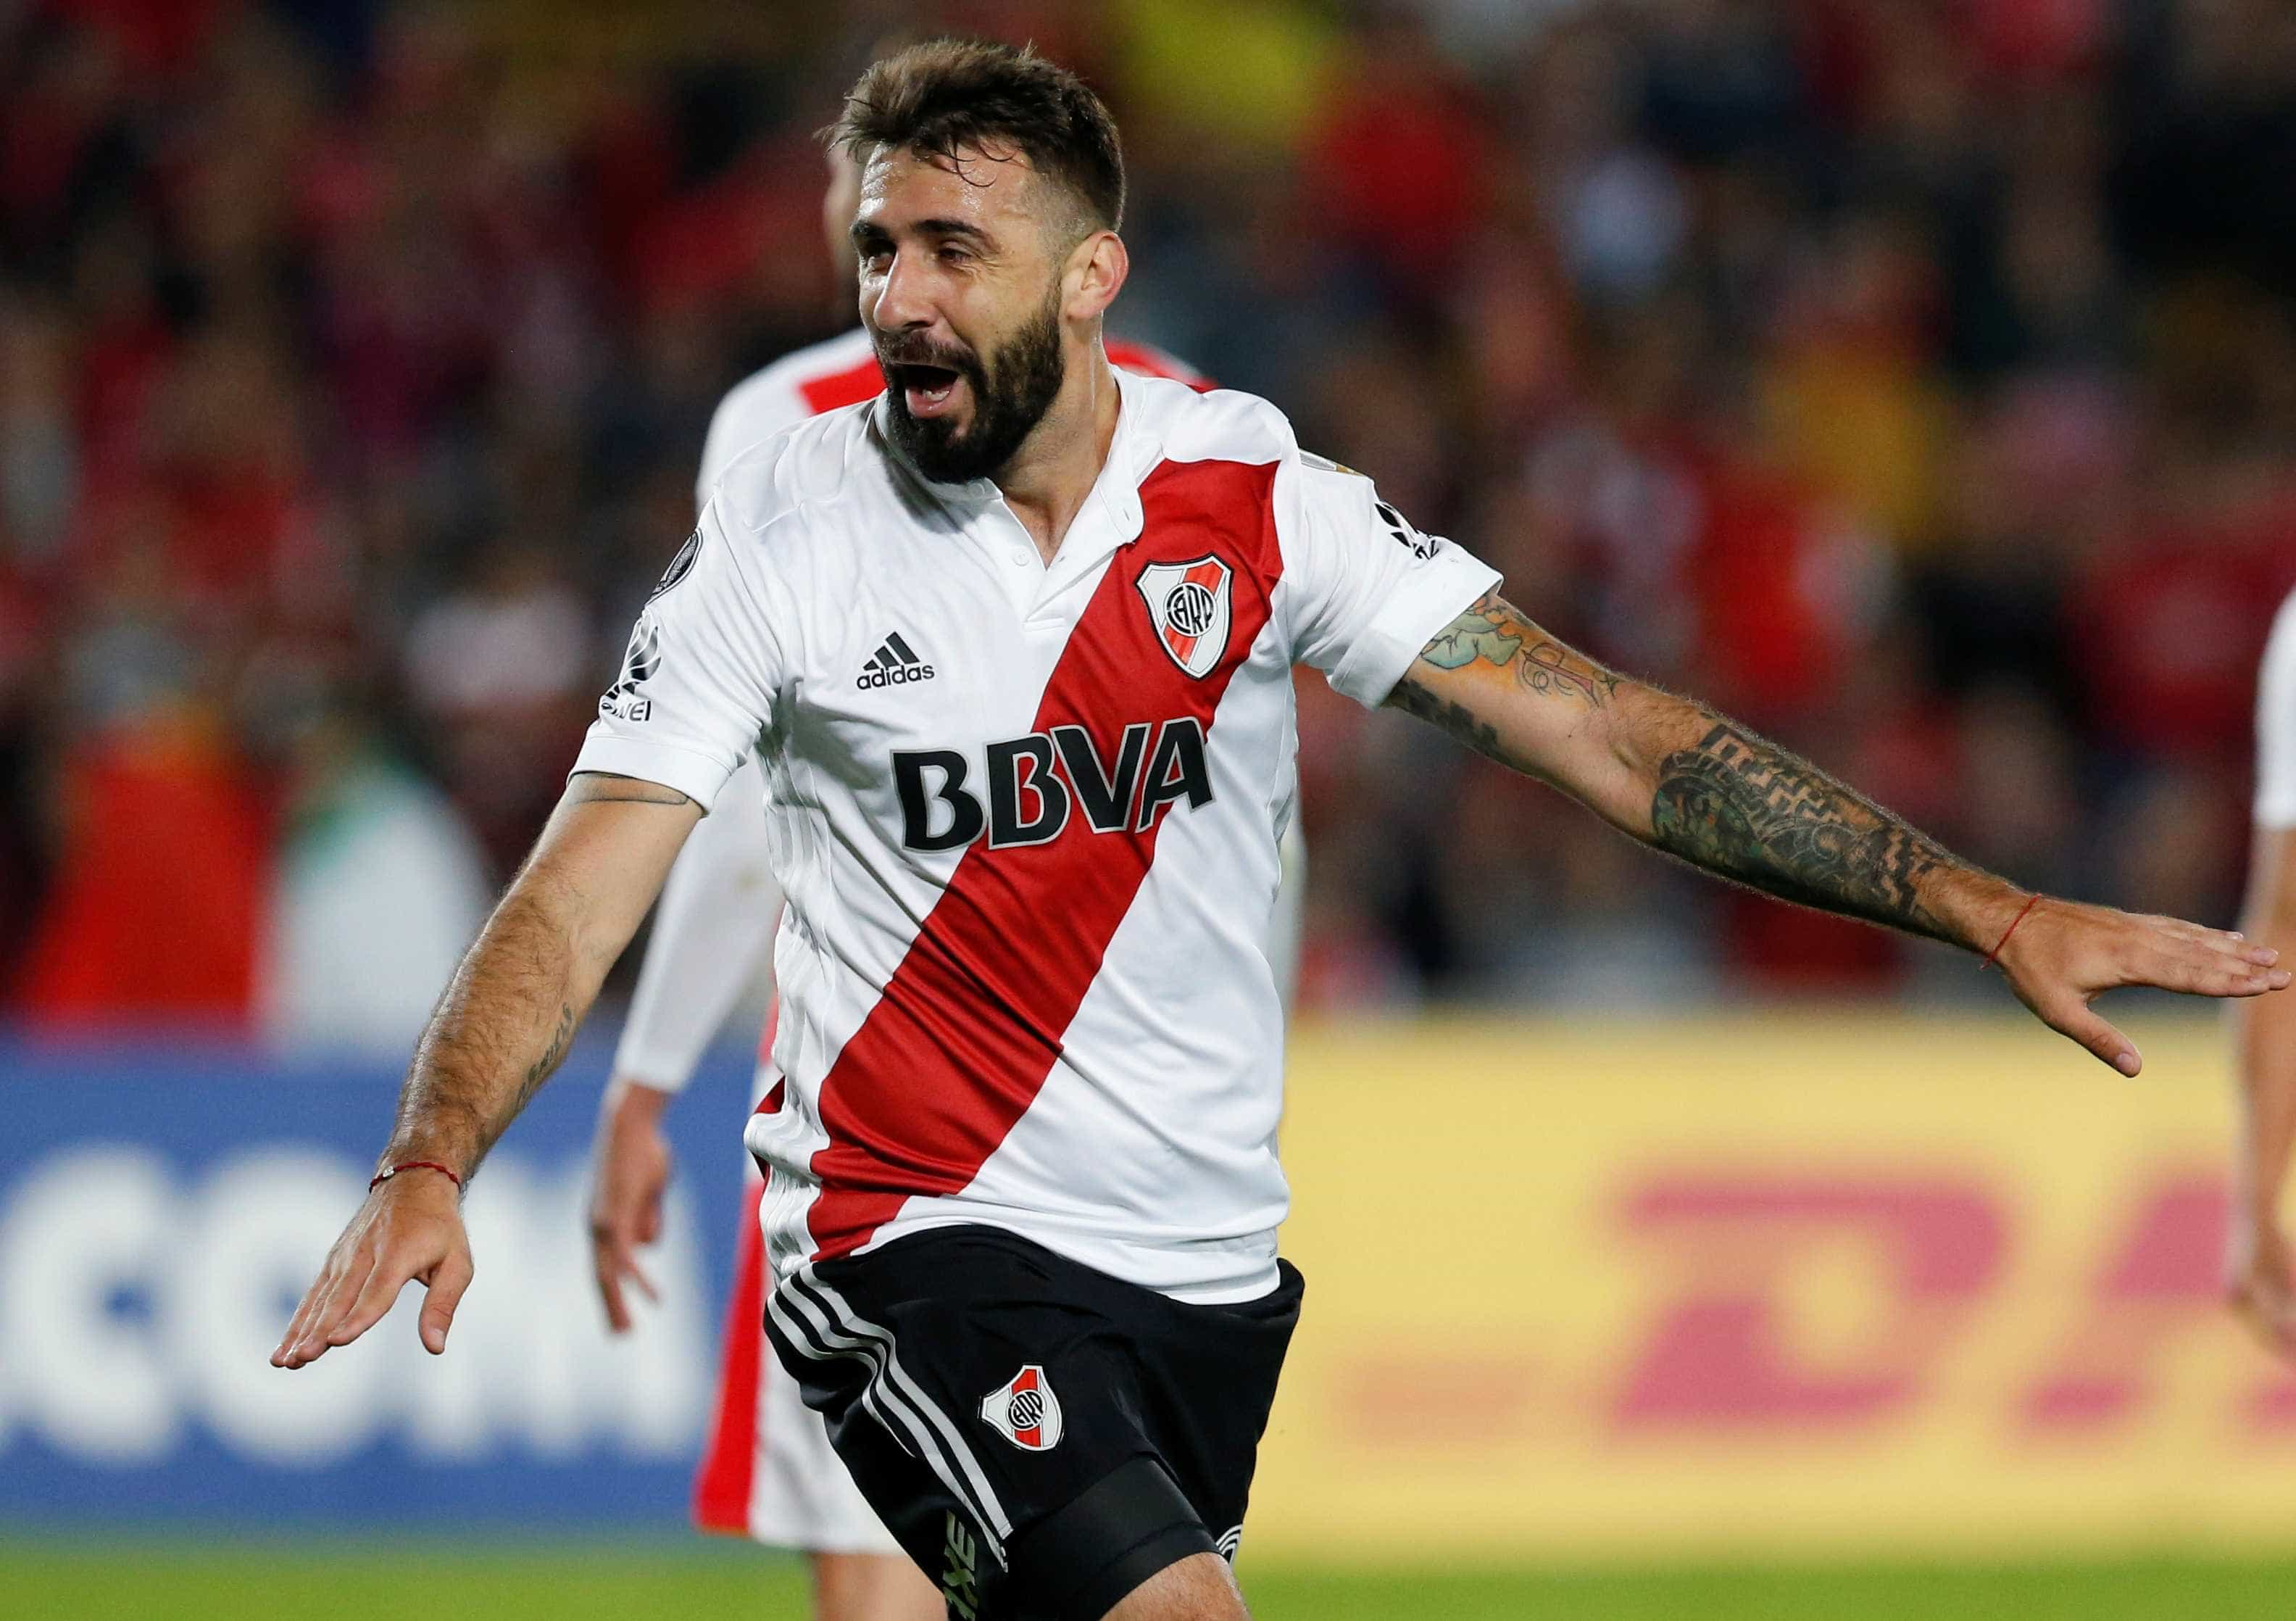 Torcedor do Boca, Pratto enfrenta seu time na final da Libertadores